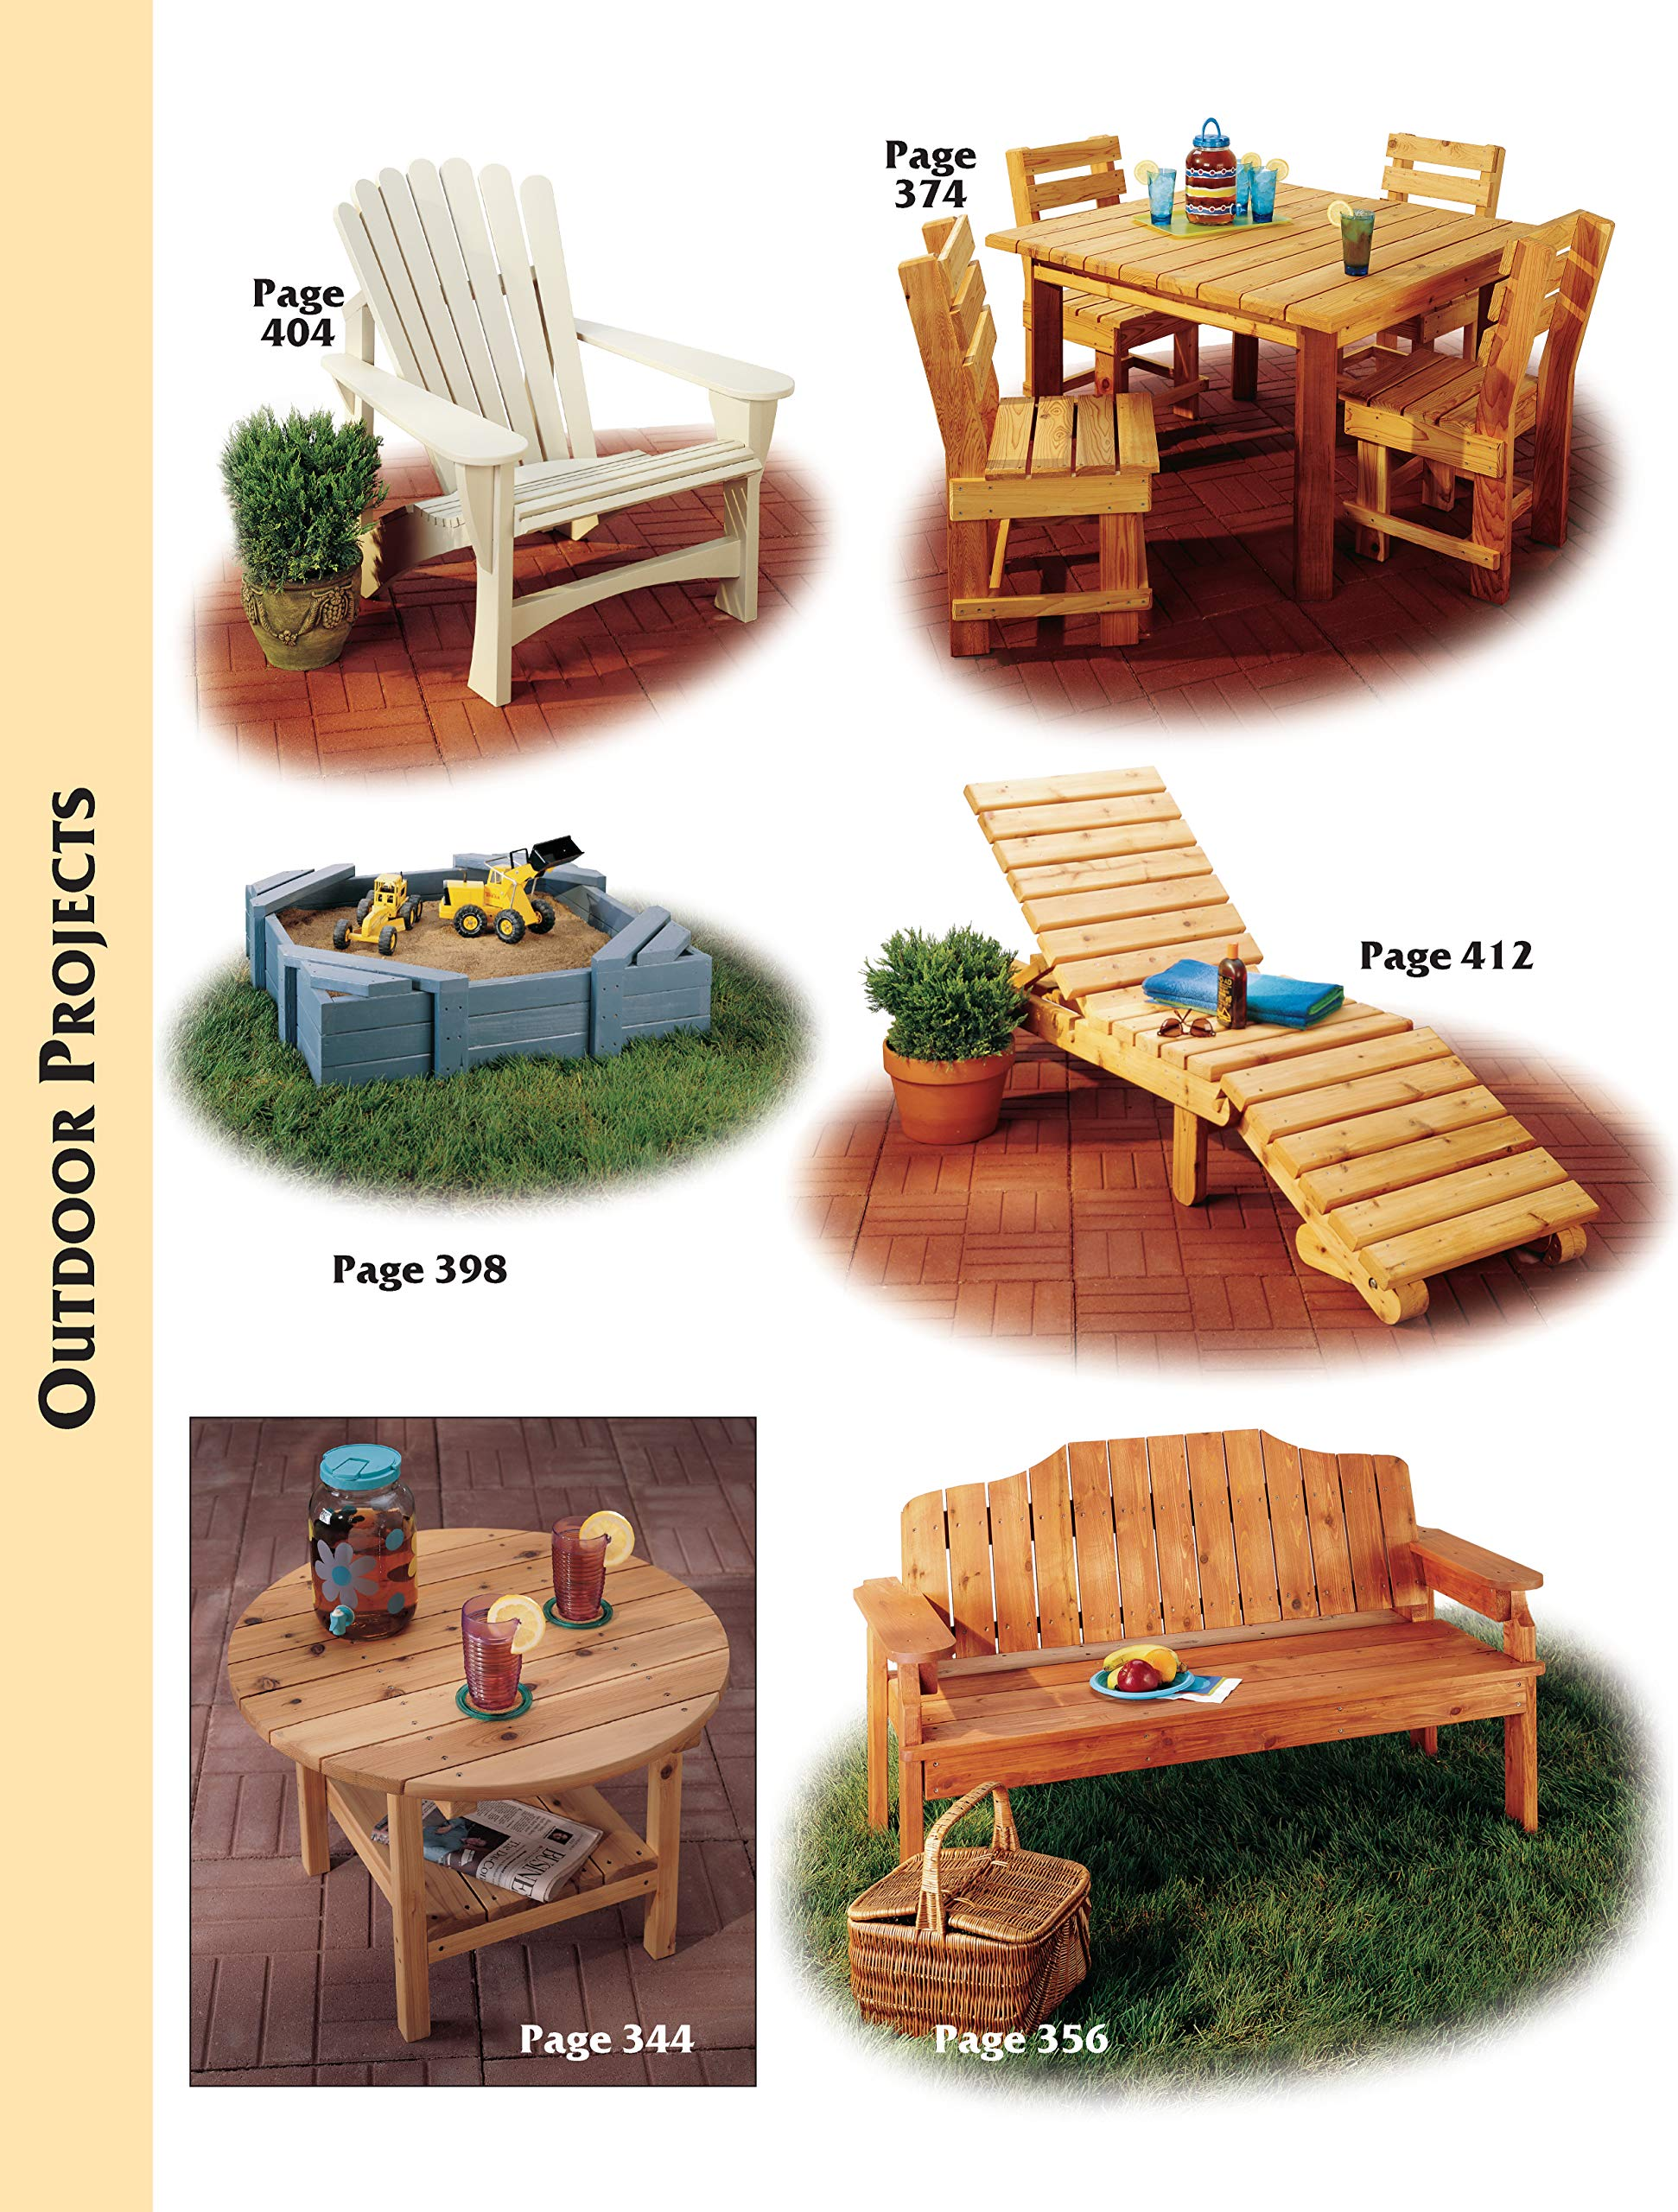 The Complete Book of Woodworking: Step-by-Step Guide to Essential Woodworking Skills, Techniques and Tips (Landauer) More Than 40 Projects with Detailed, Easy-to-Follow Plans and Over 200 Photos by Design Originals (Image #7)